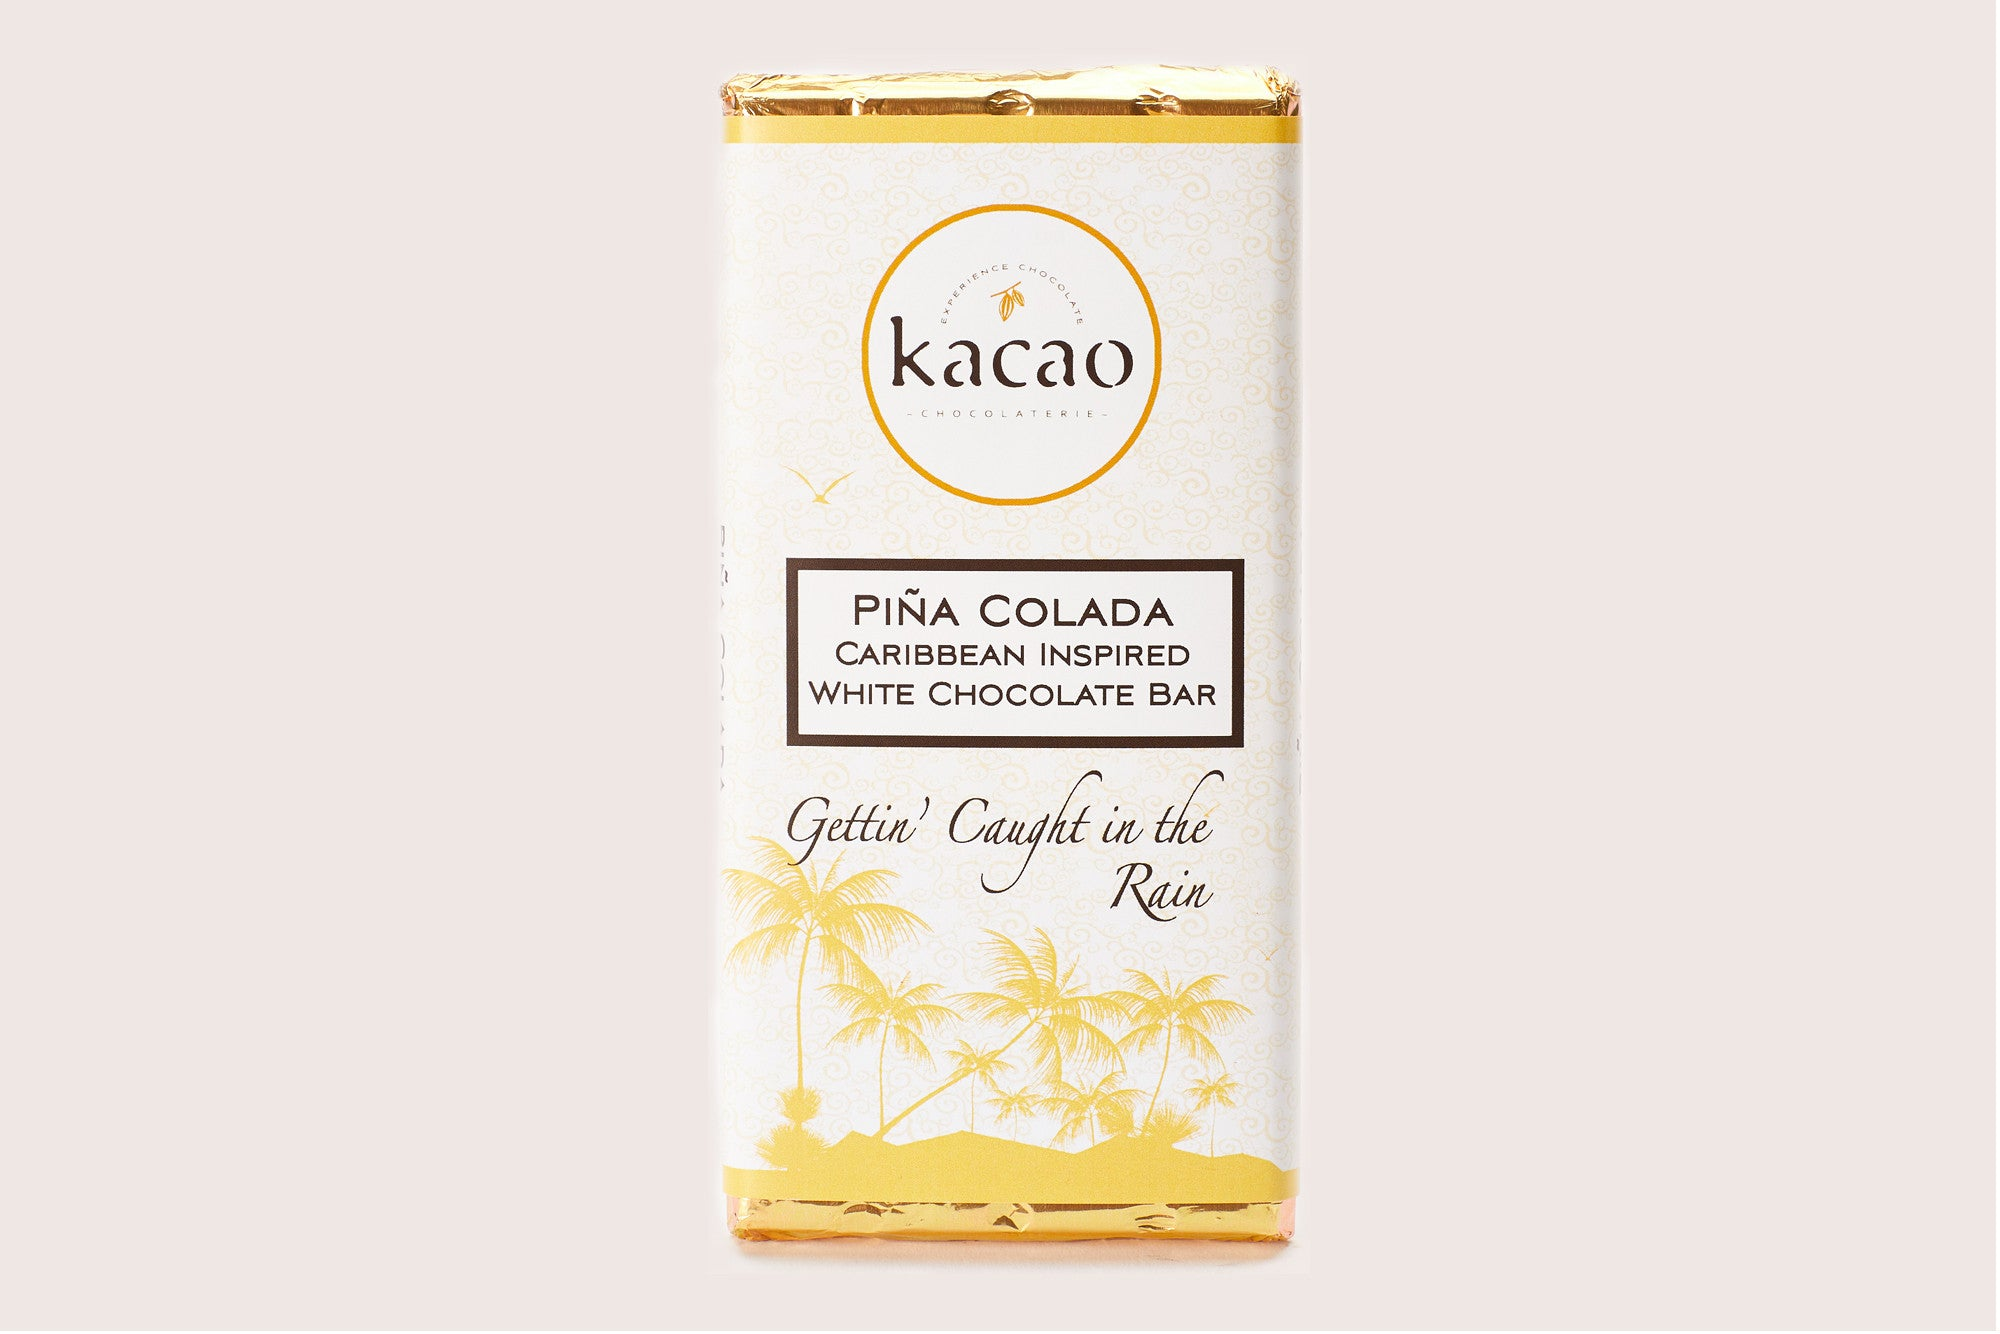 Pina Colada White Chocolate Bar